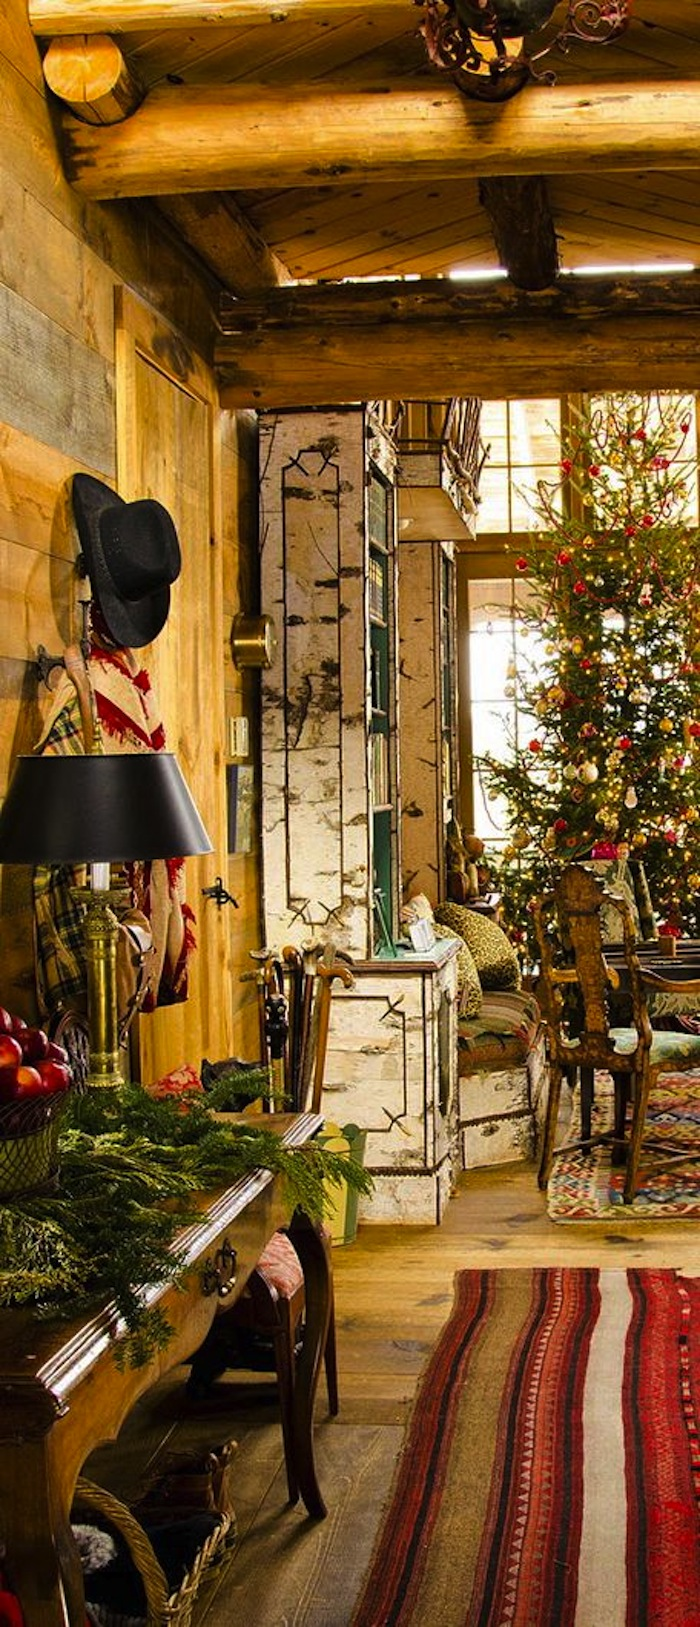 Country christmas decorations 2014 - Country Christmas Decorations